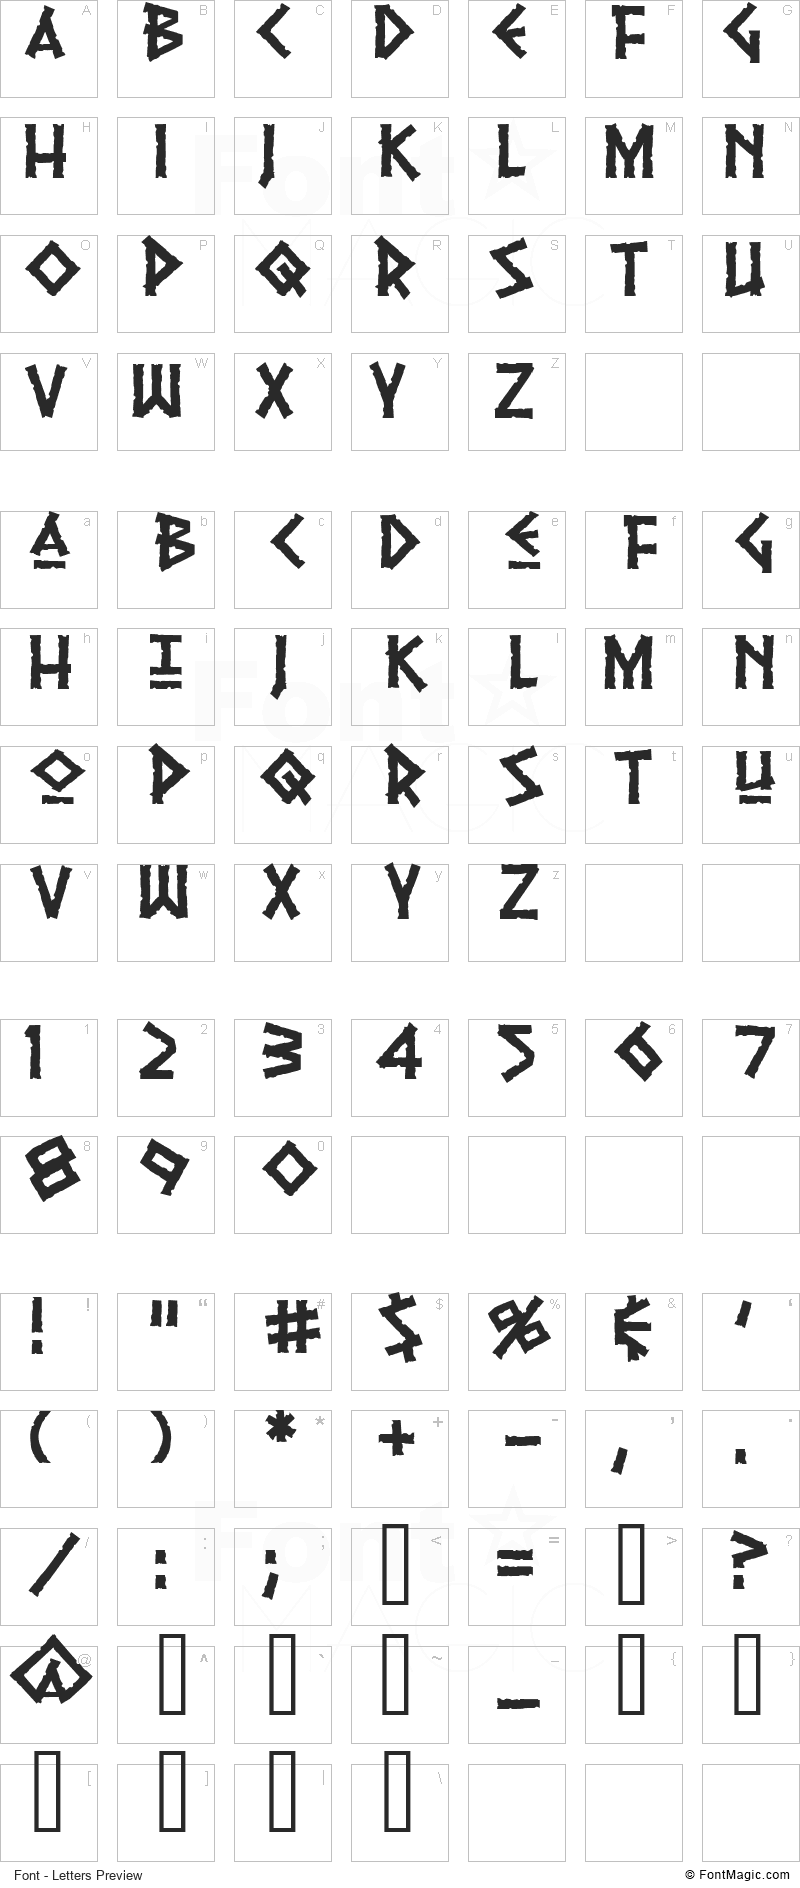 Pythia Font - All Latters Preview Chart